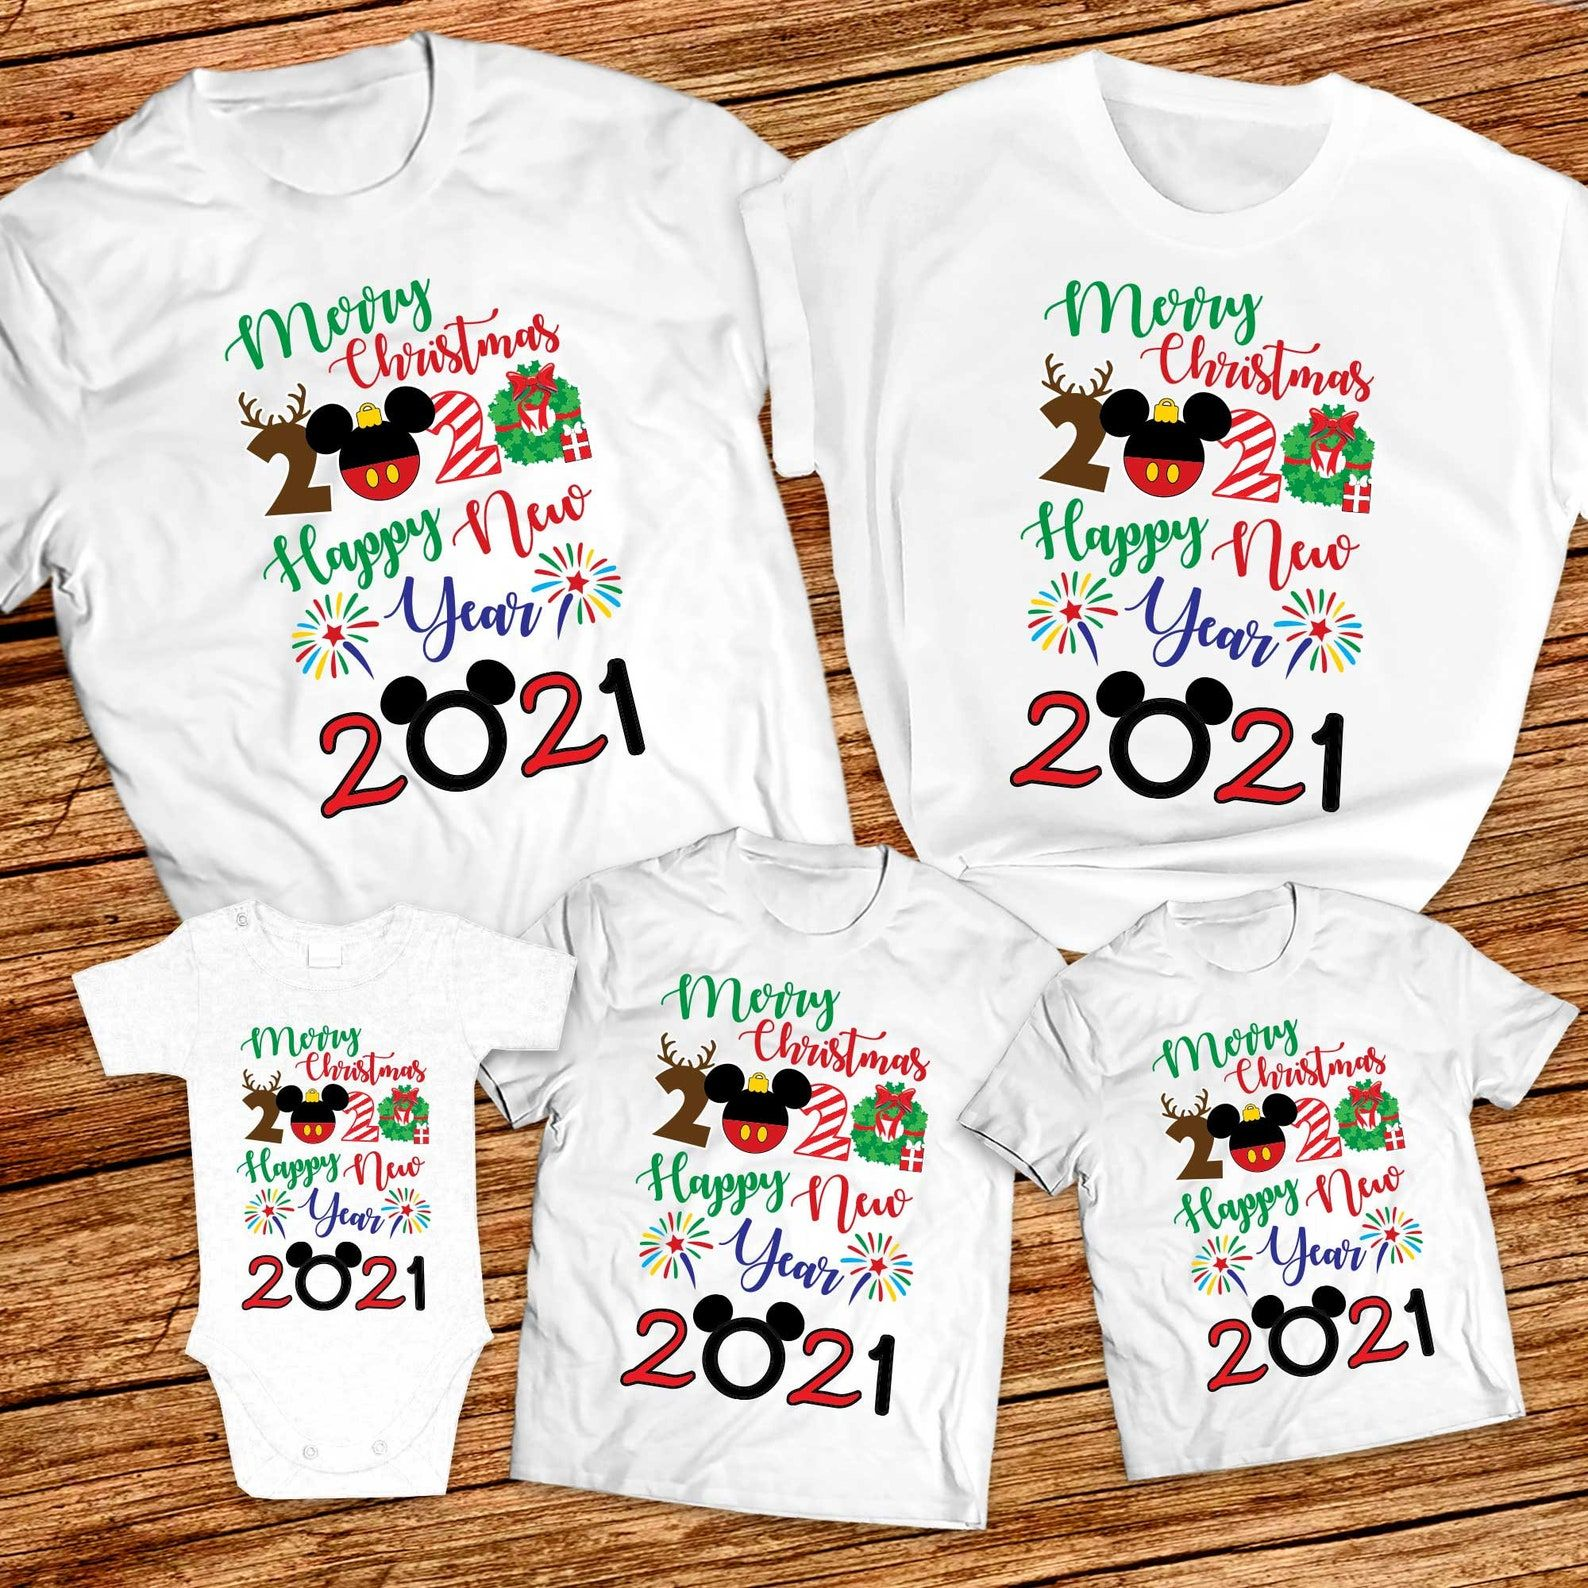 Very Merry Christmas 2020 And Happy New Year 2021 Shirts Matching Family Christmas And New Year Shirts Disney Christmas And New Year Shirt In 2020 New Years Shirts Very Merry Christmas Merry Christmas Shirts